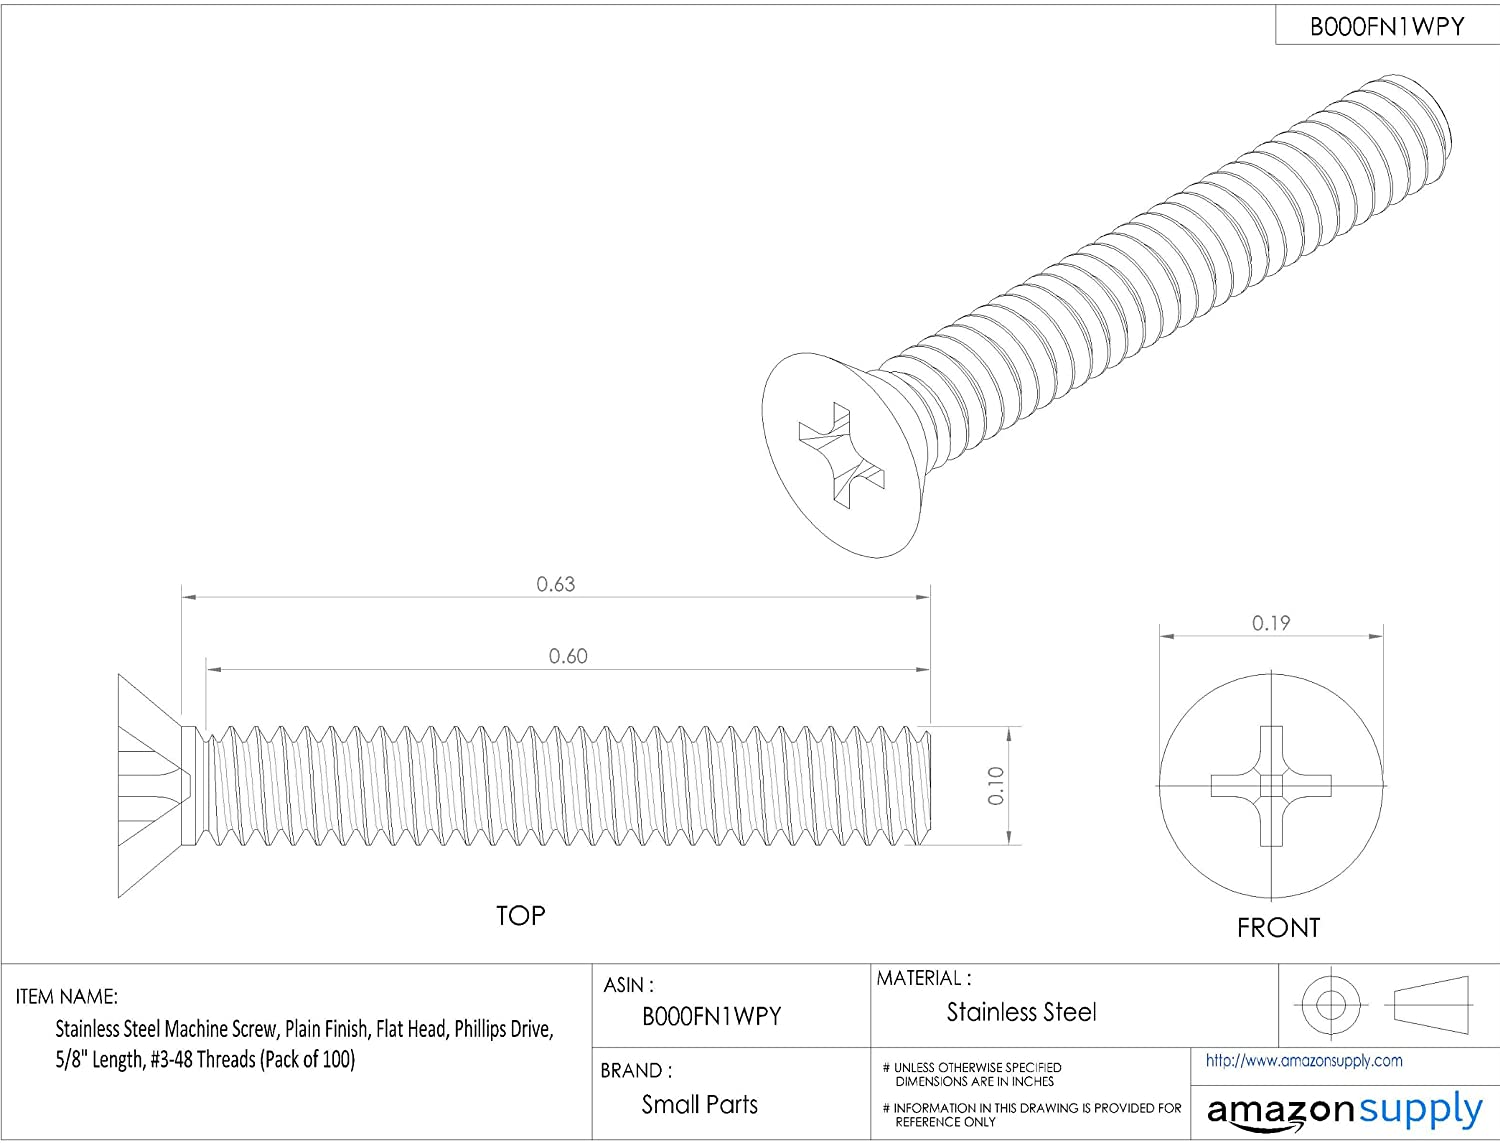 Stainless Steel Machine Screw 5//8 Length Small Parts B000FN1WPY #3-48 Threads Pack of 100 Flat Head Plain Finish Phillips Drive 5//8 Length